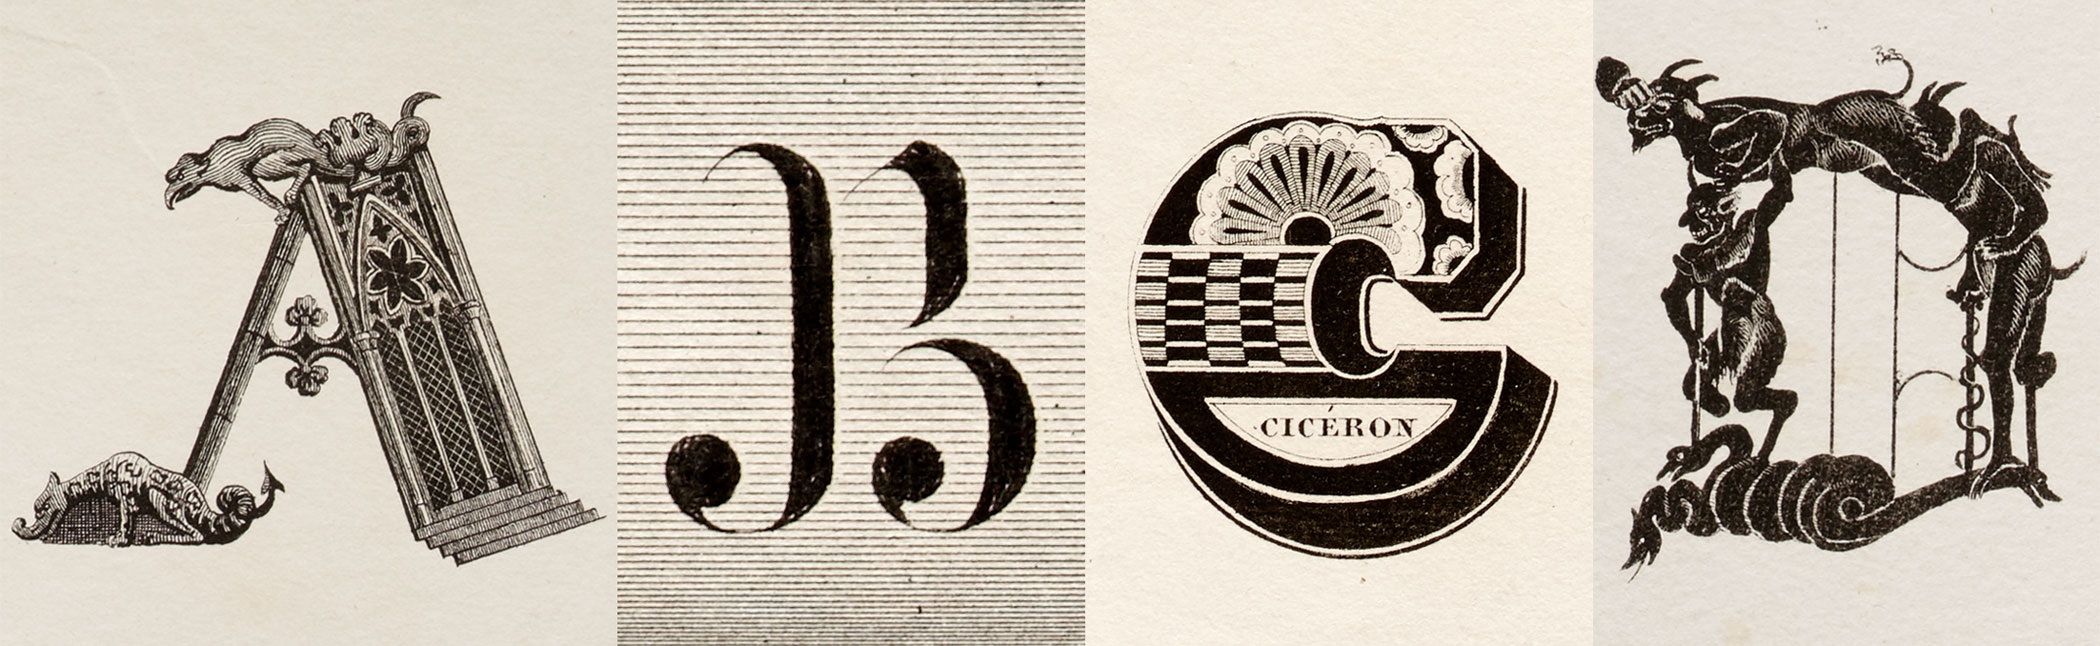 letterform archive from the collection the alphabet lithographs